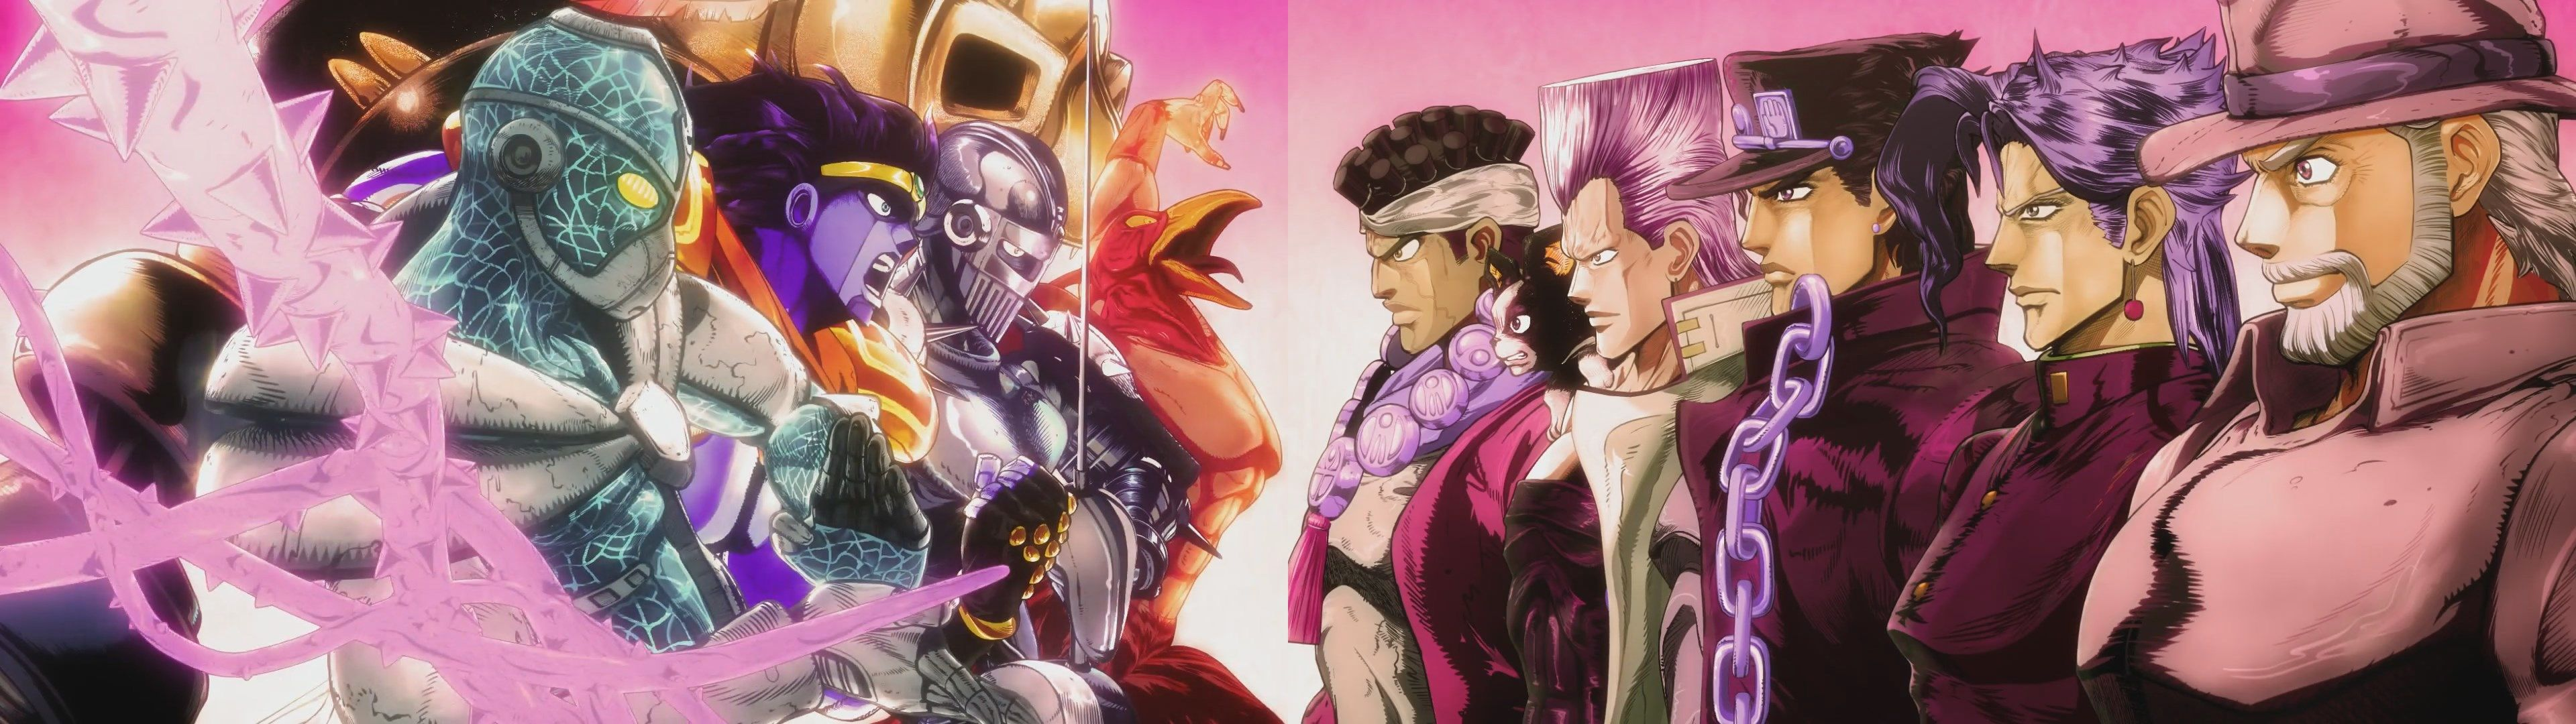 3840x1080 Wallpaper For Desktop Jojos Bizarre Adventure